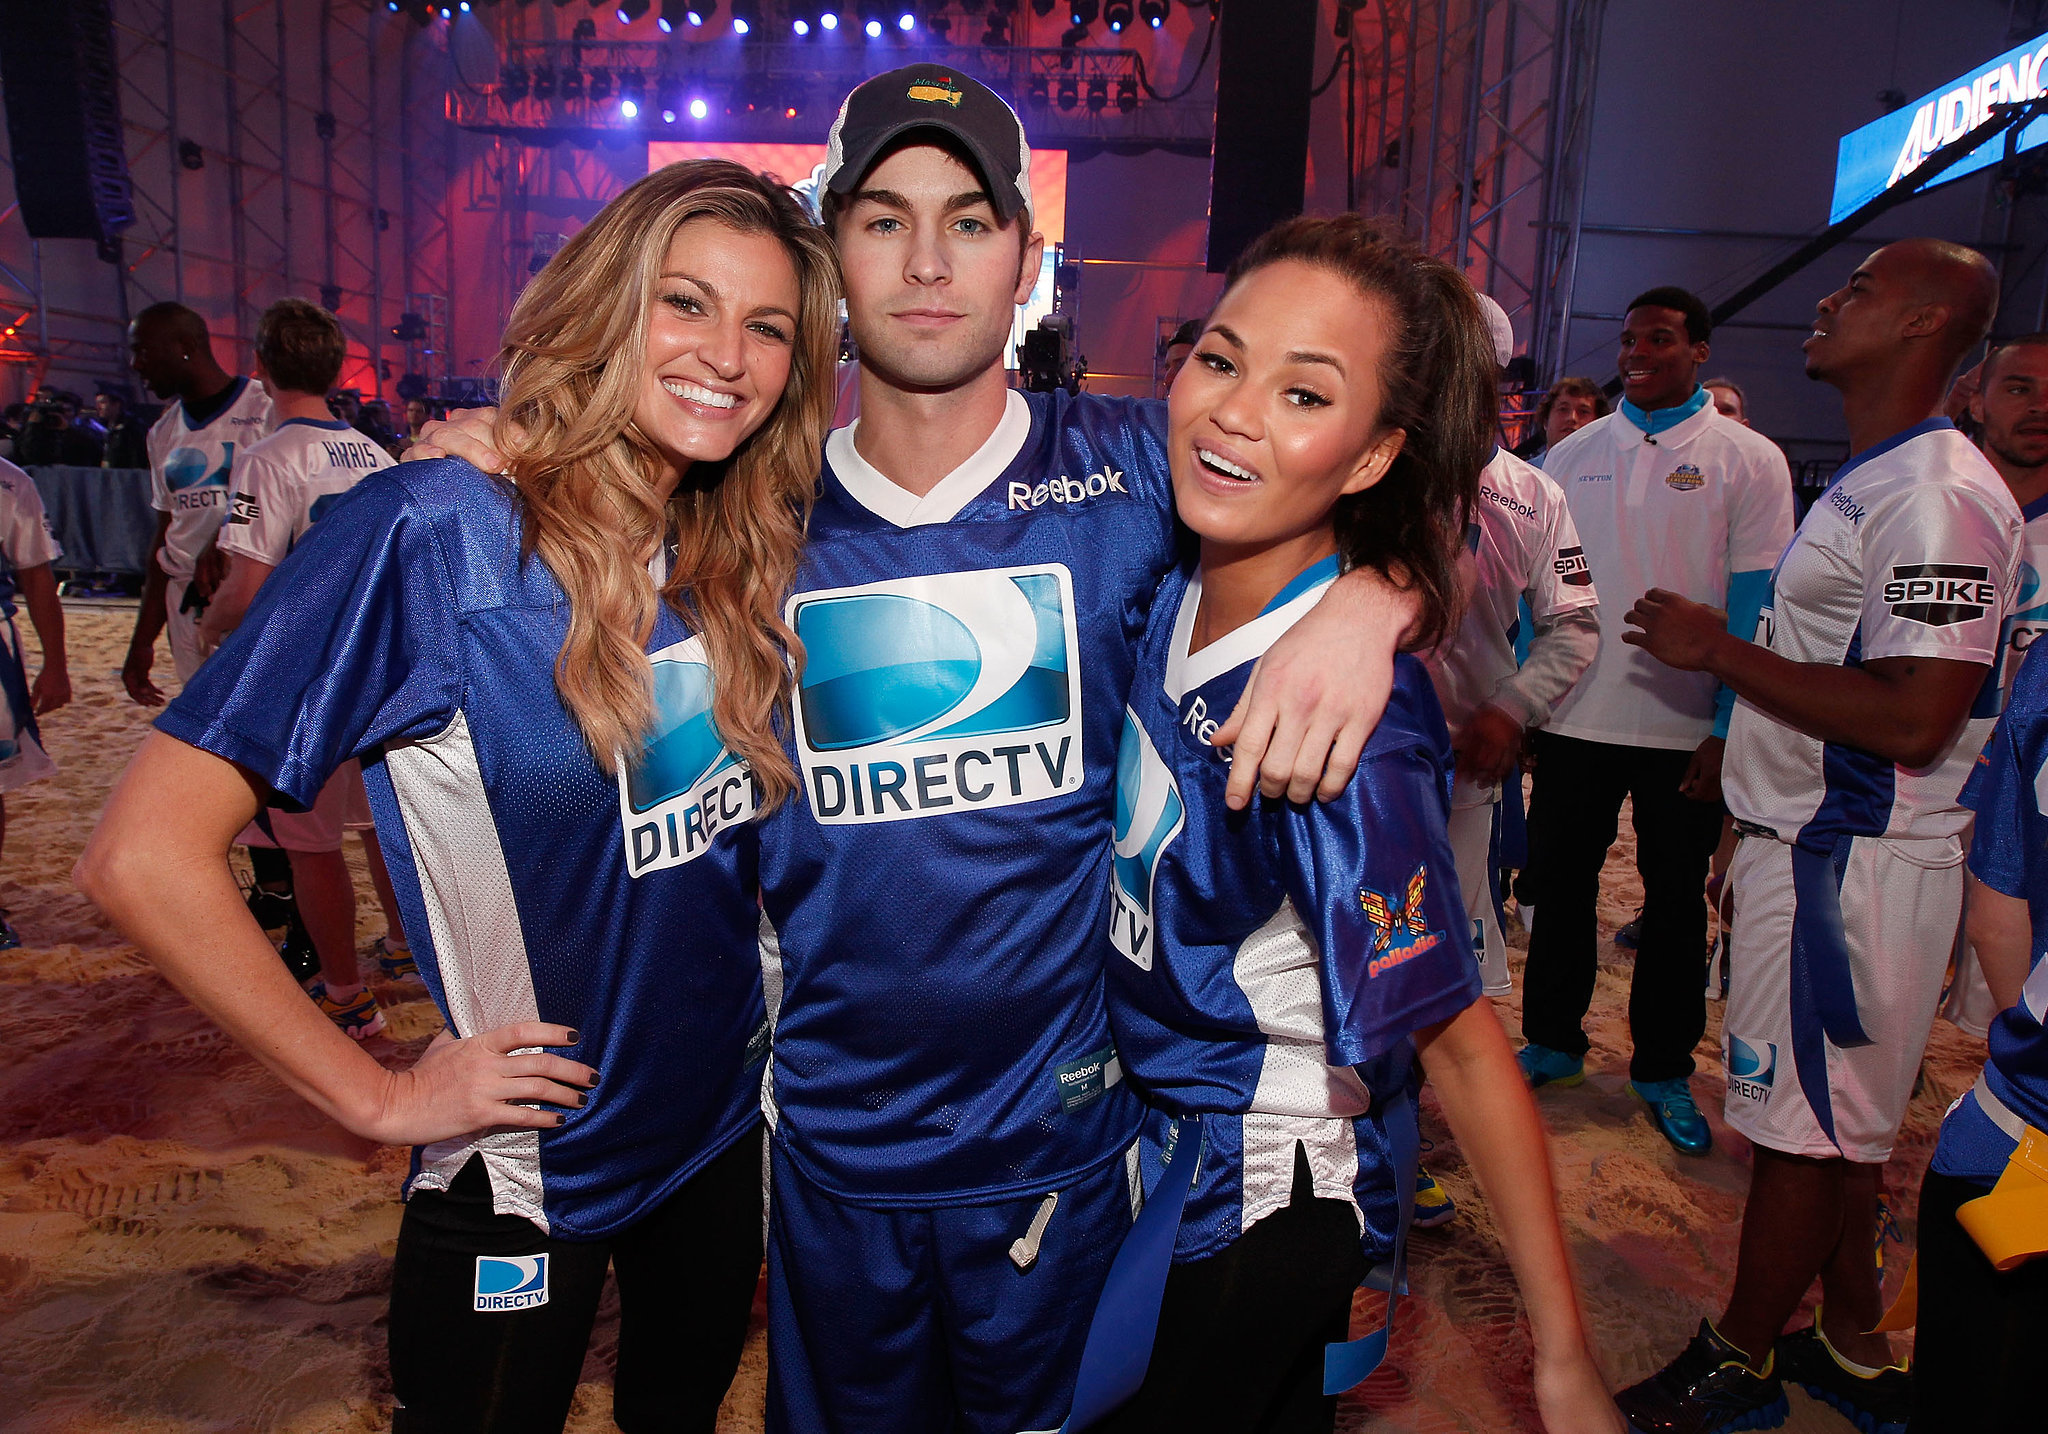 Chace Crawford hung out with teammates Erin Andrews and Chrissy Teigen at